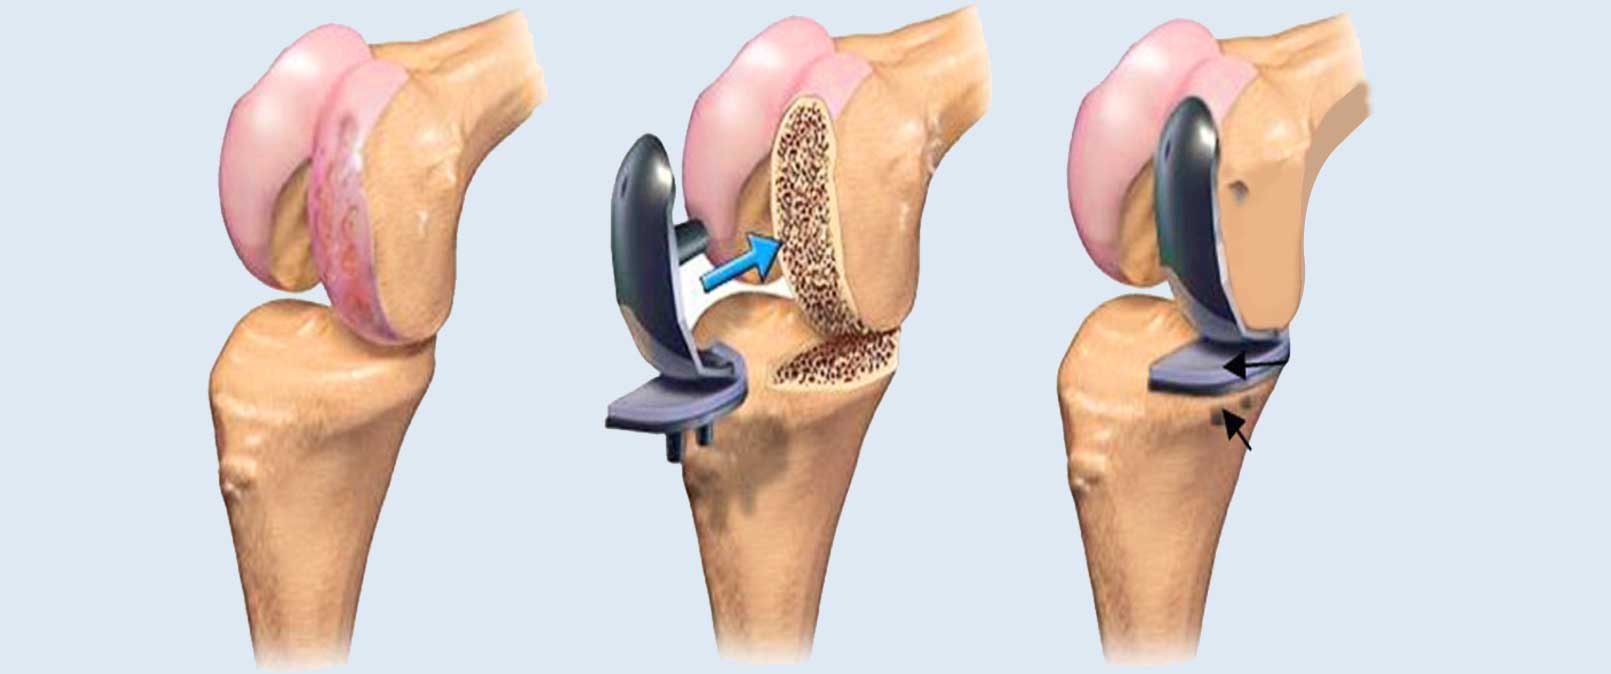 joint replacement surgery in Mumbai